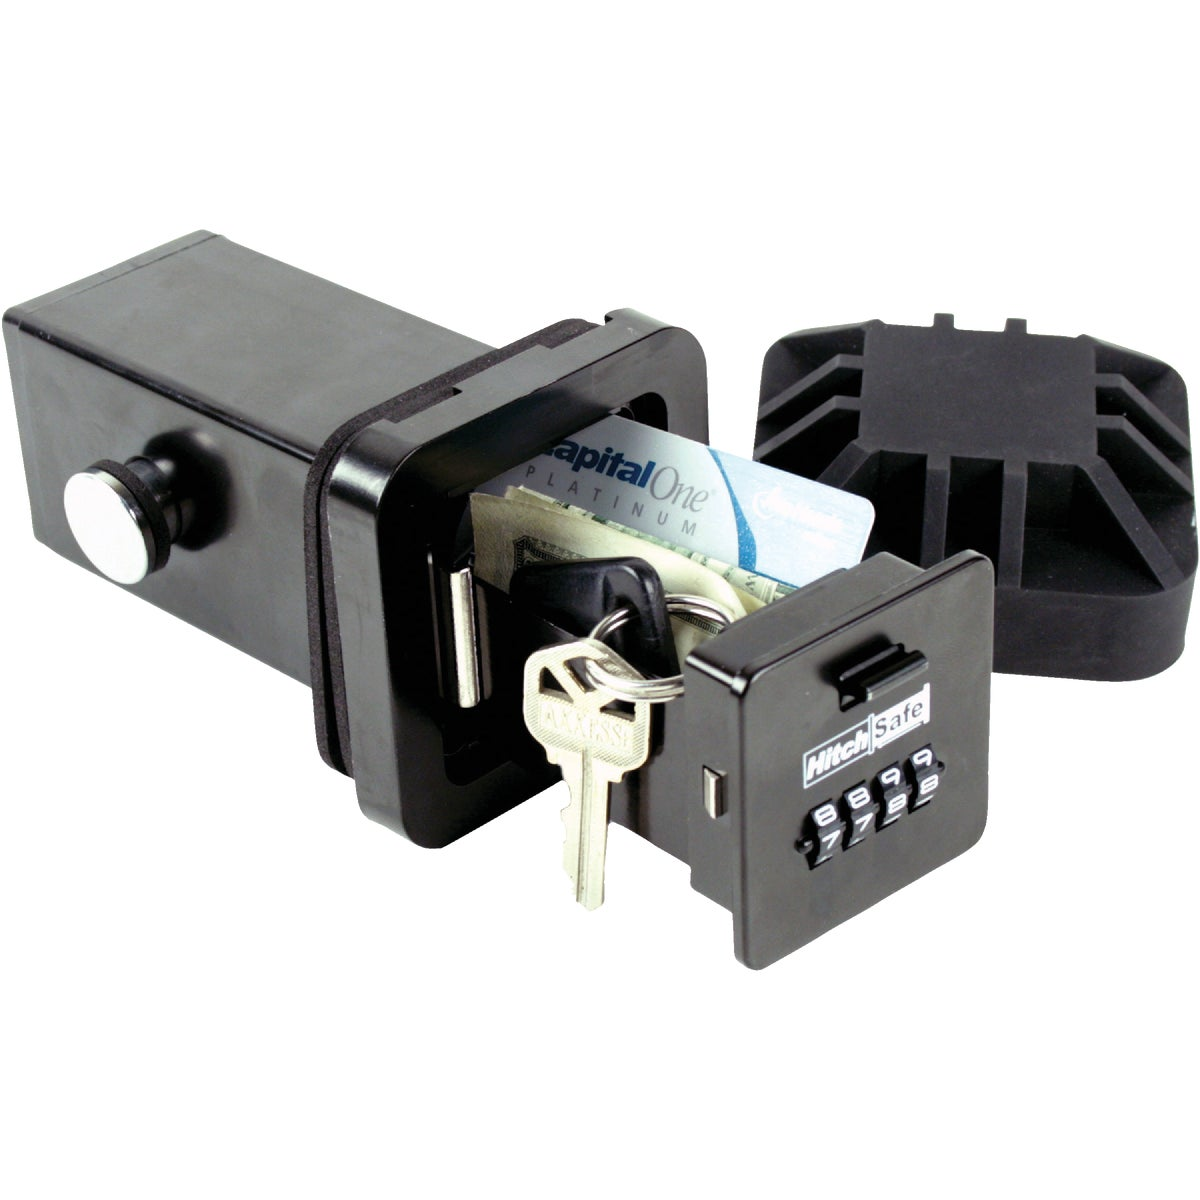 HITCHSAFE KEY VAULT - HS7000 by FJM Security